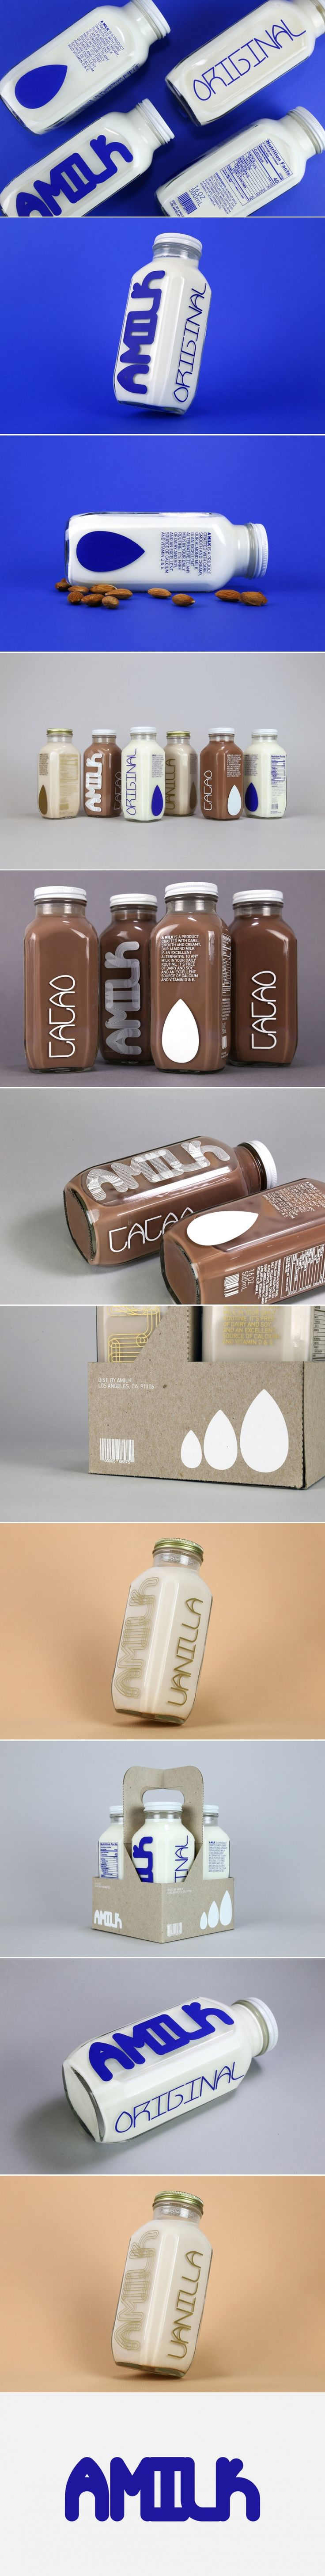 Check Out this Typographically Funky Almond Milk Packaging — The Dieline | Packaging & Branding Design & Innovation News